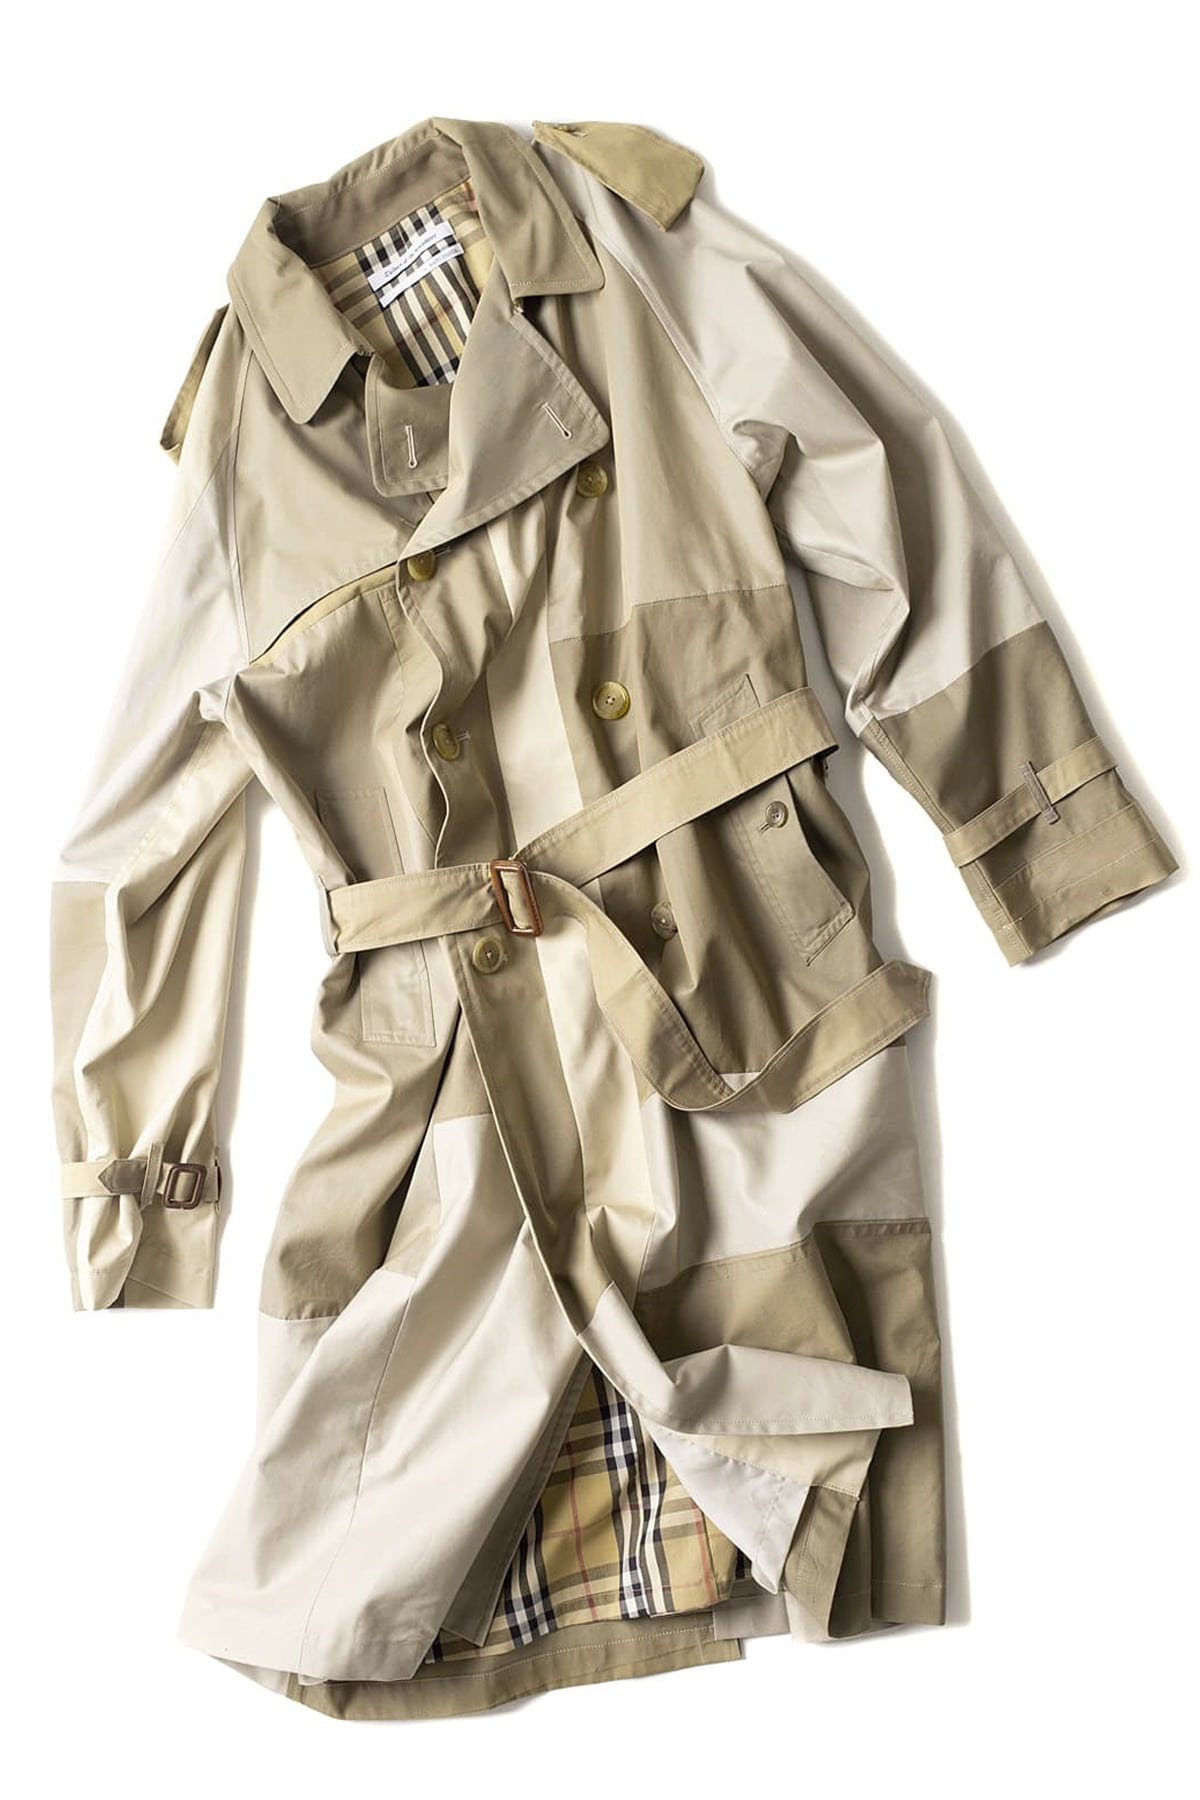 Children of the discordance : Vintage Patch Trench Coat (C)